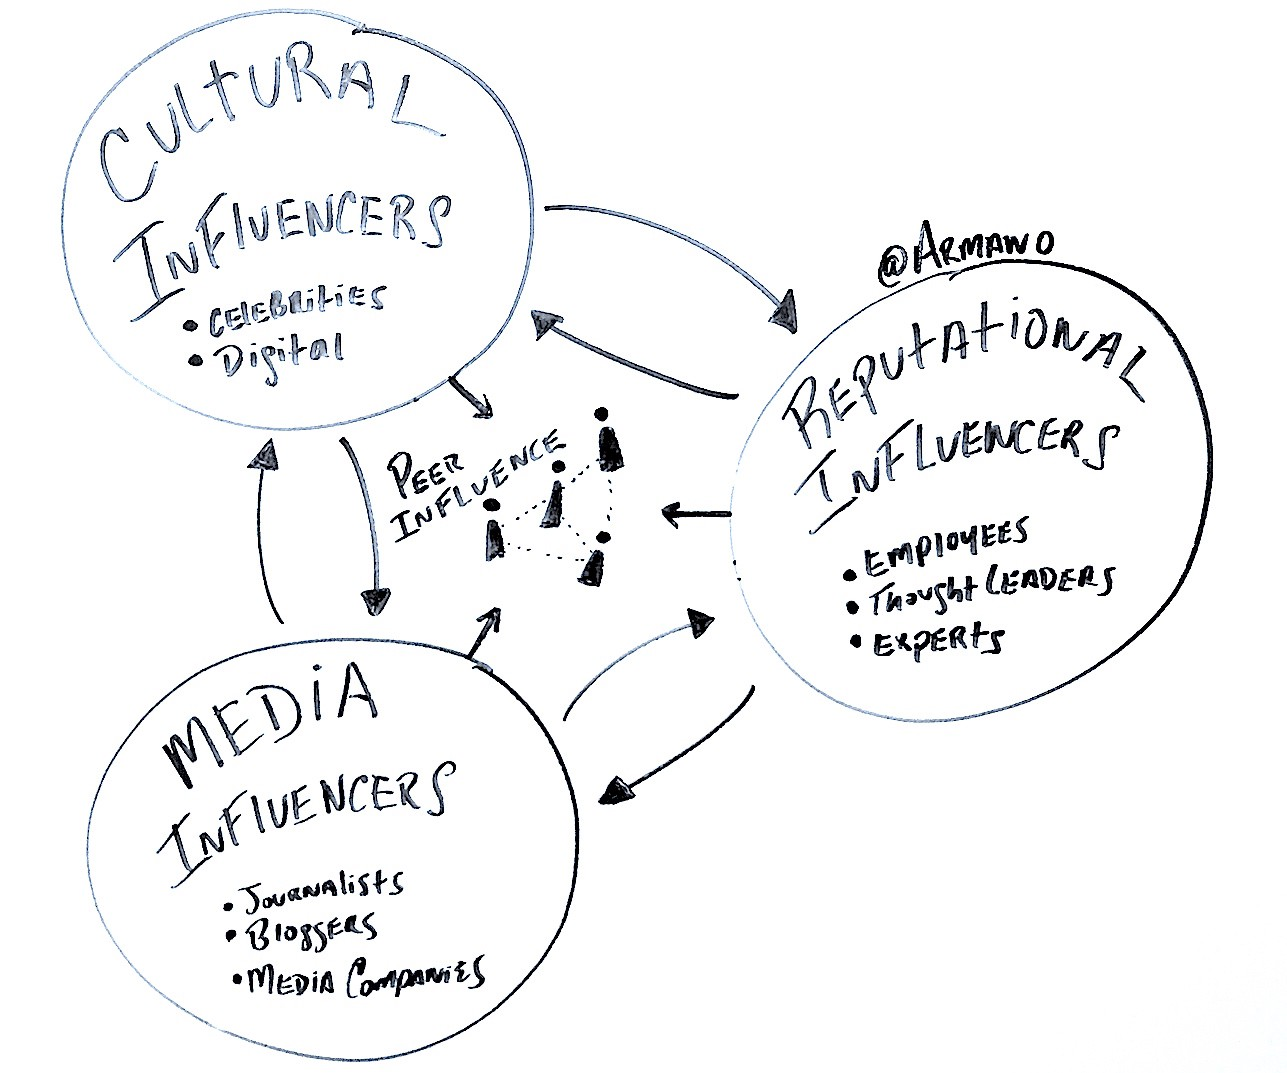 Influencer marketing diagram